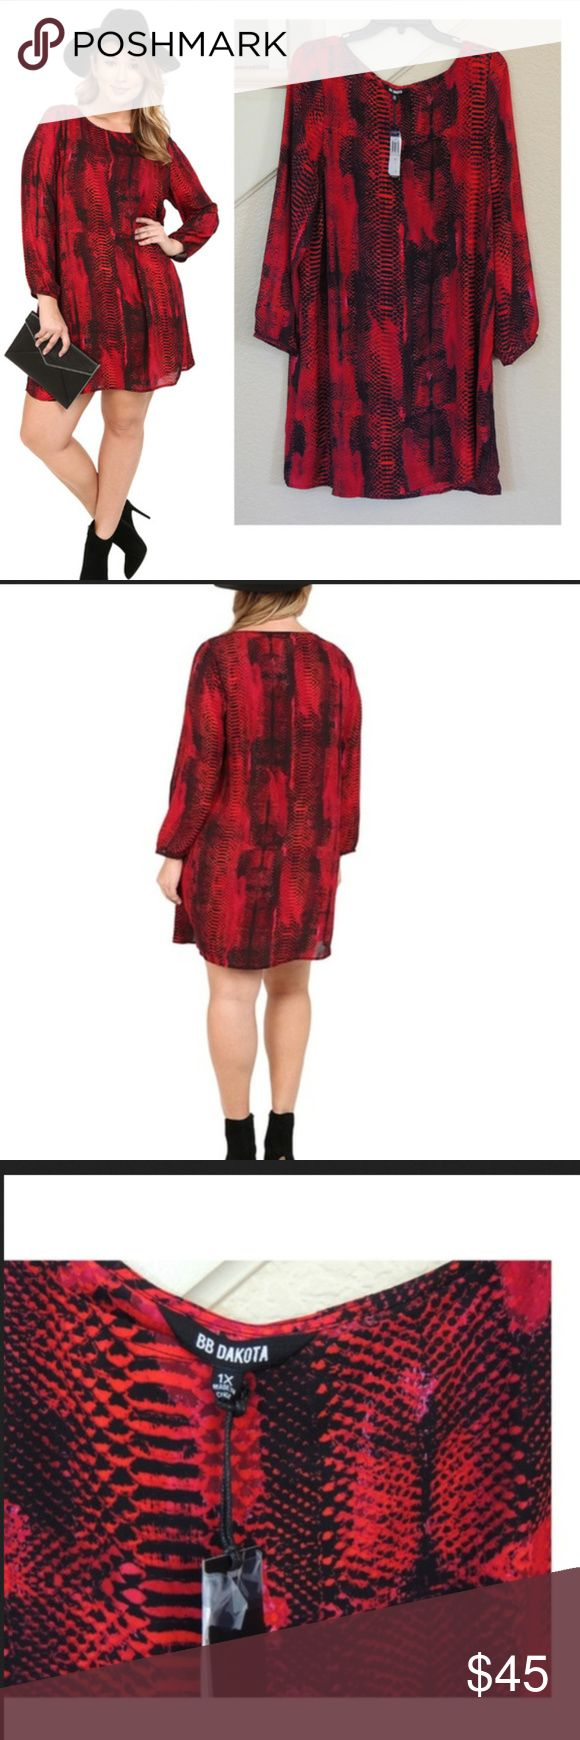 """Red Snake Print Long Sleeve Shift Dress ** Reasonable Offers Welcome - No Trades** - Approx measurements lying flat: -Bust (armpit to armpit): 22 1/2""""  - length 37 1/2"""" - This easy BB Dakota shift dress gains a bold look from a mix of colorful snake prints. Boat neckline. Long sleeves. Unlined. - Hand wash or dry clean. -Fabric: Crepe. 100% polyester. BB Dakota Dresses Long Sleeve"""